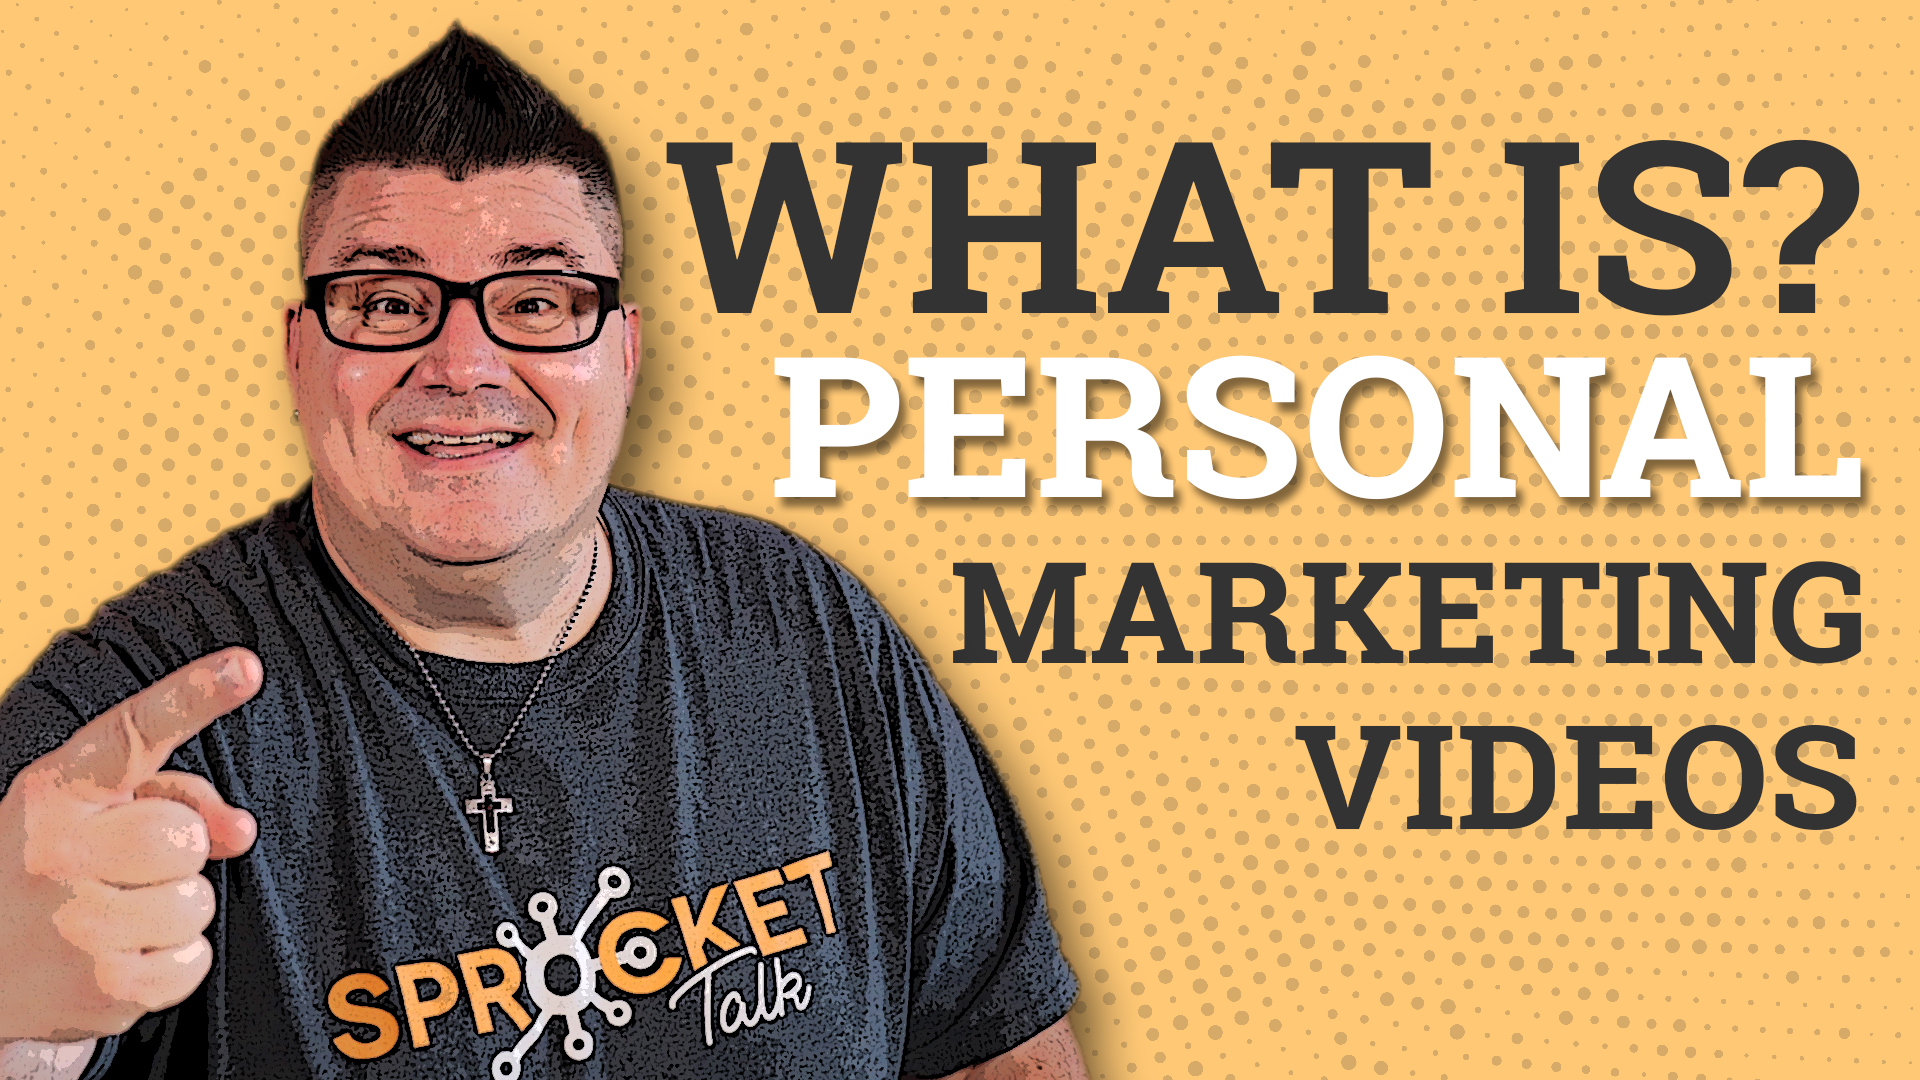 What are Personalized 1-to-1 Marketing Videos